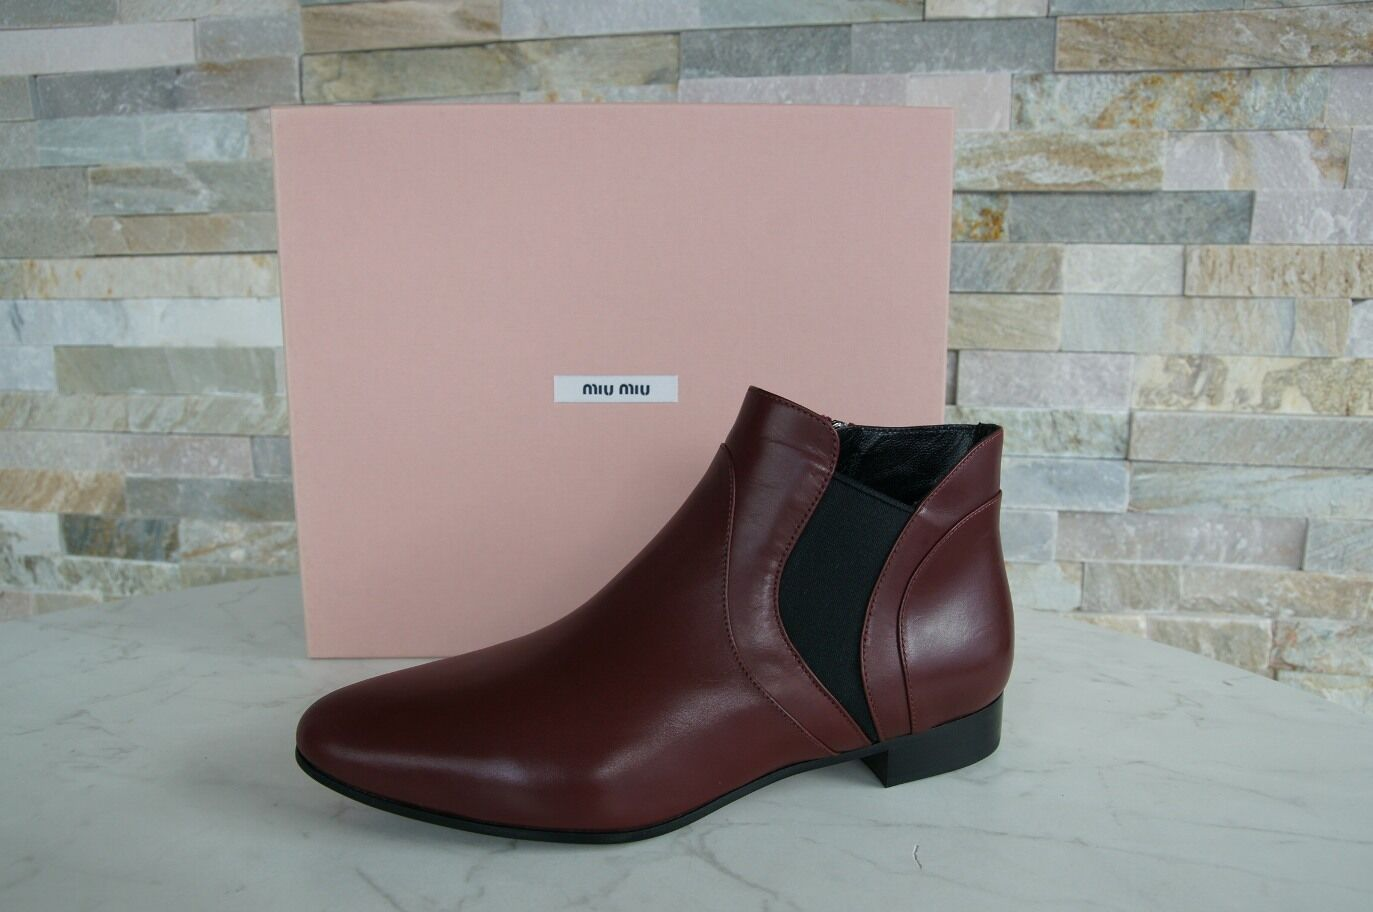 MIU MIU Gr 39 Ankle Ankle Ankle Stiefel Stiefeletten booties schuhe 5T9336 rot ROT NEU 8cf054